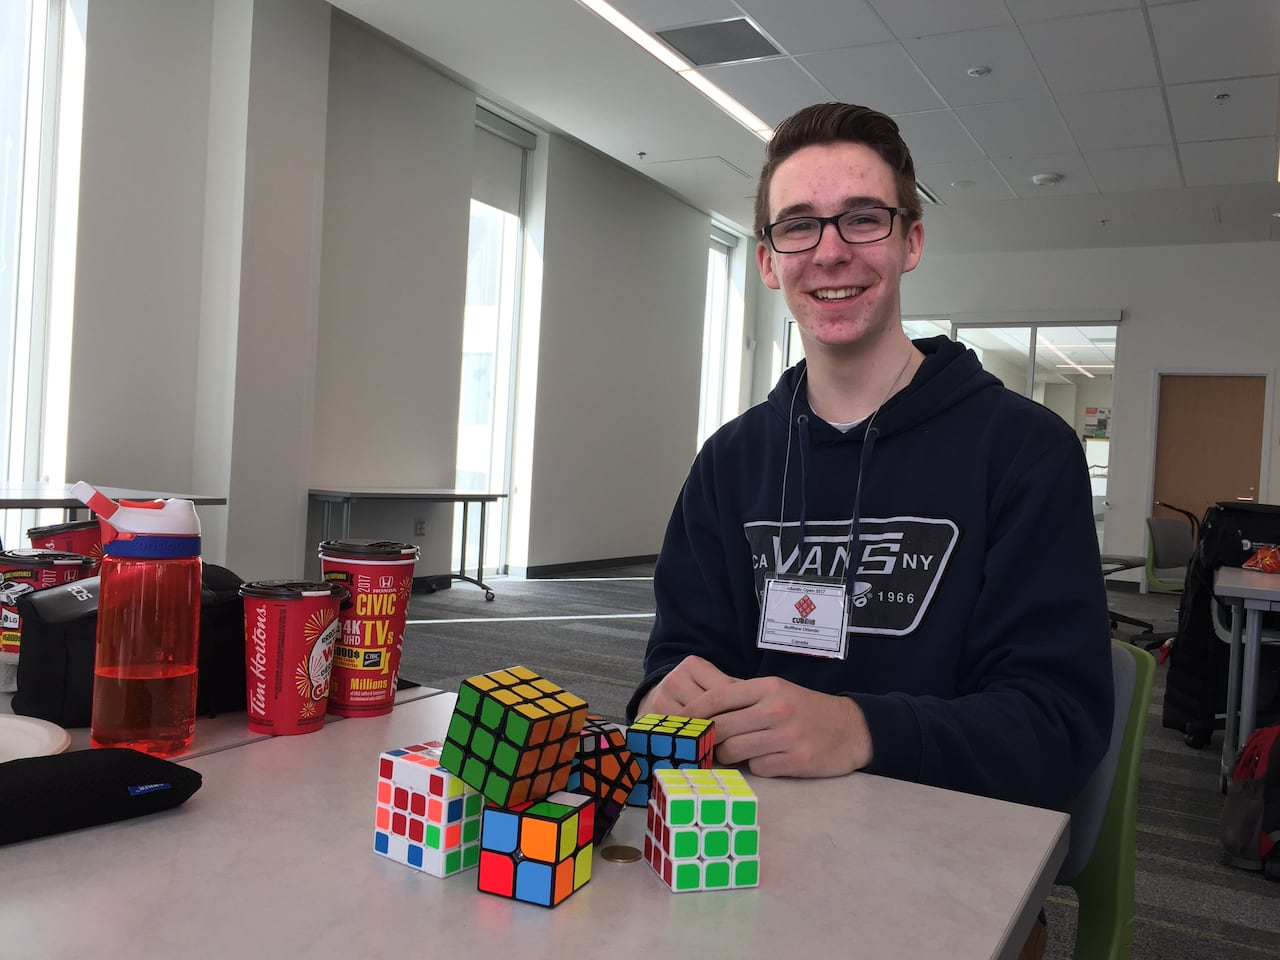 Rubik's Cube Montreal With Rubik S Cubes It S Always A Challenge To Get Faster Cbc News